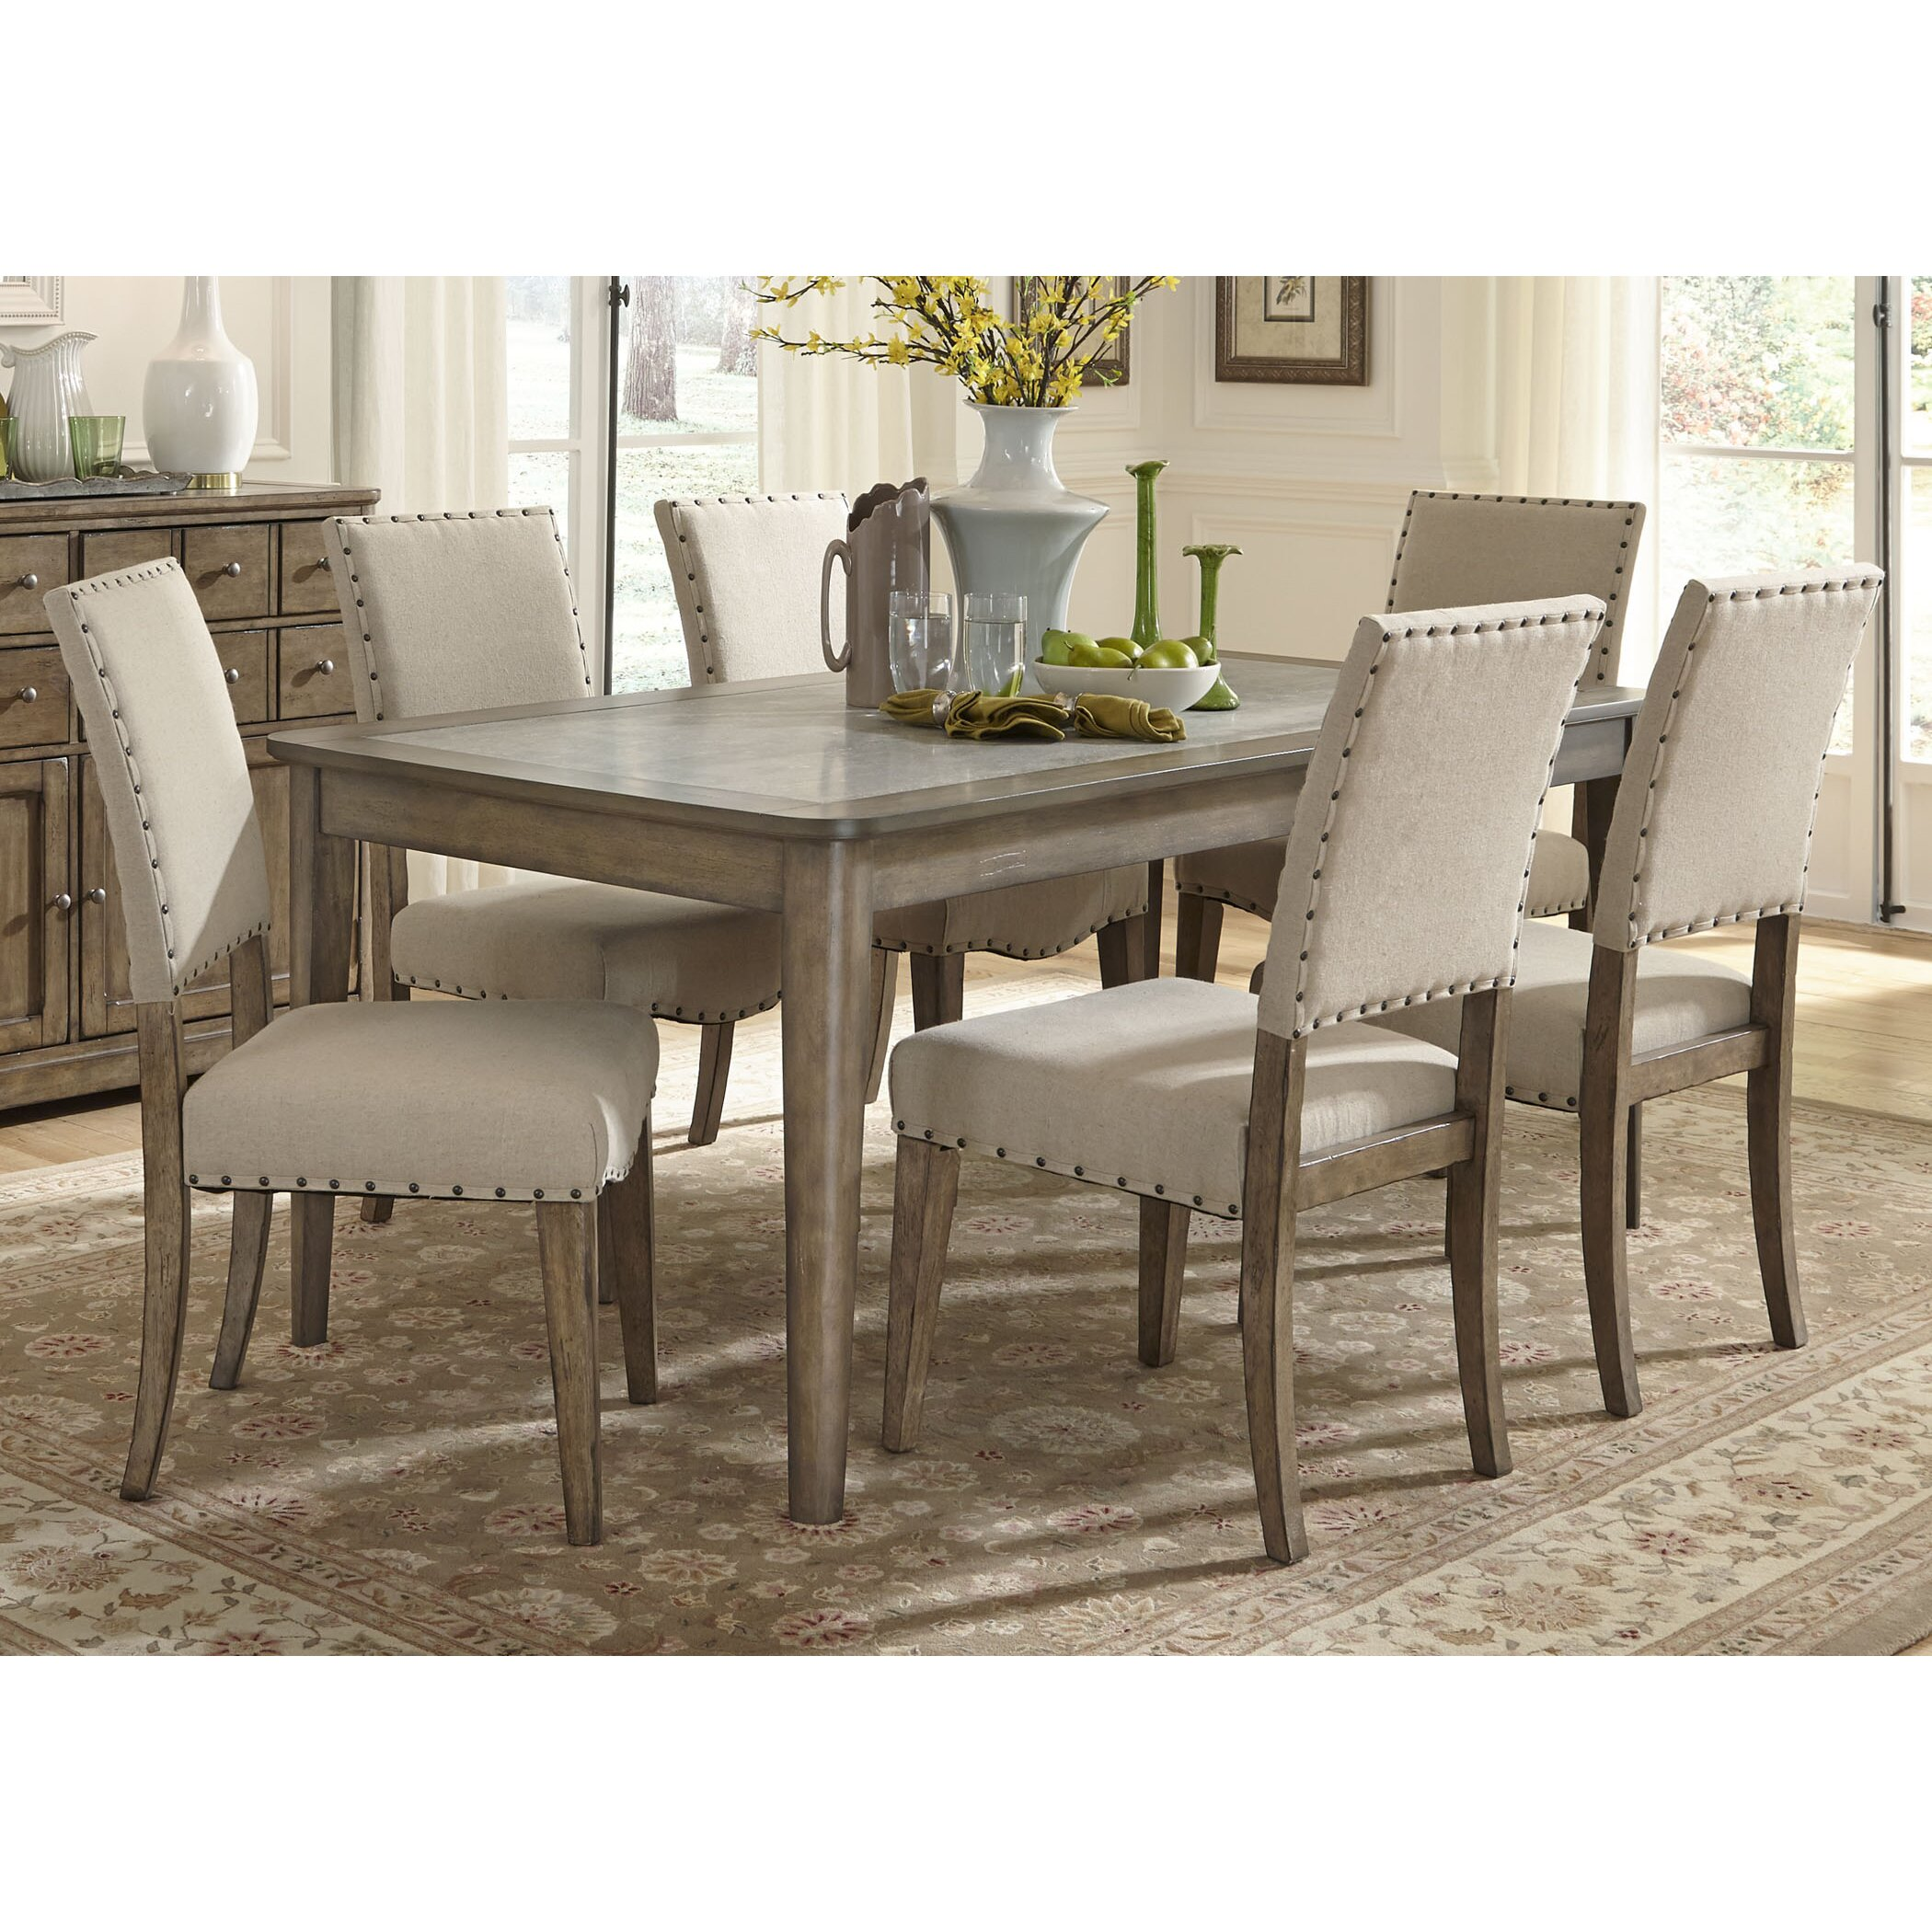 Dining Room Sets: Liberty Furniture 7 Piece Dining Set & Reviews